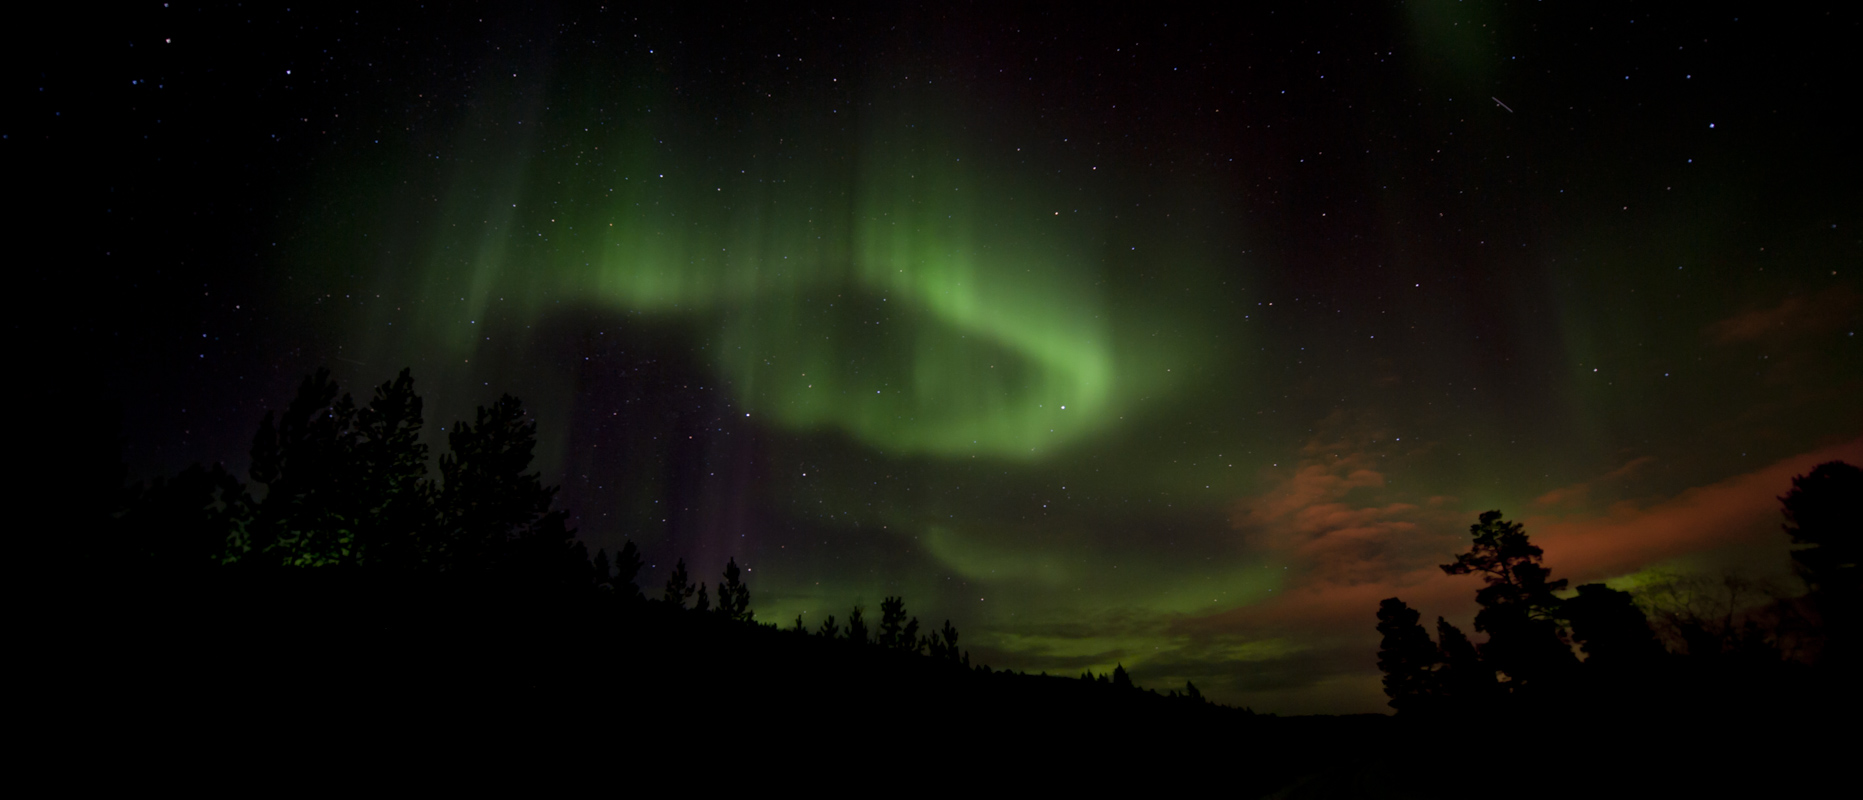 Northern Lights dancing on the sky of Finnmark © Liv Engholm